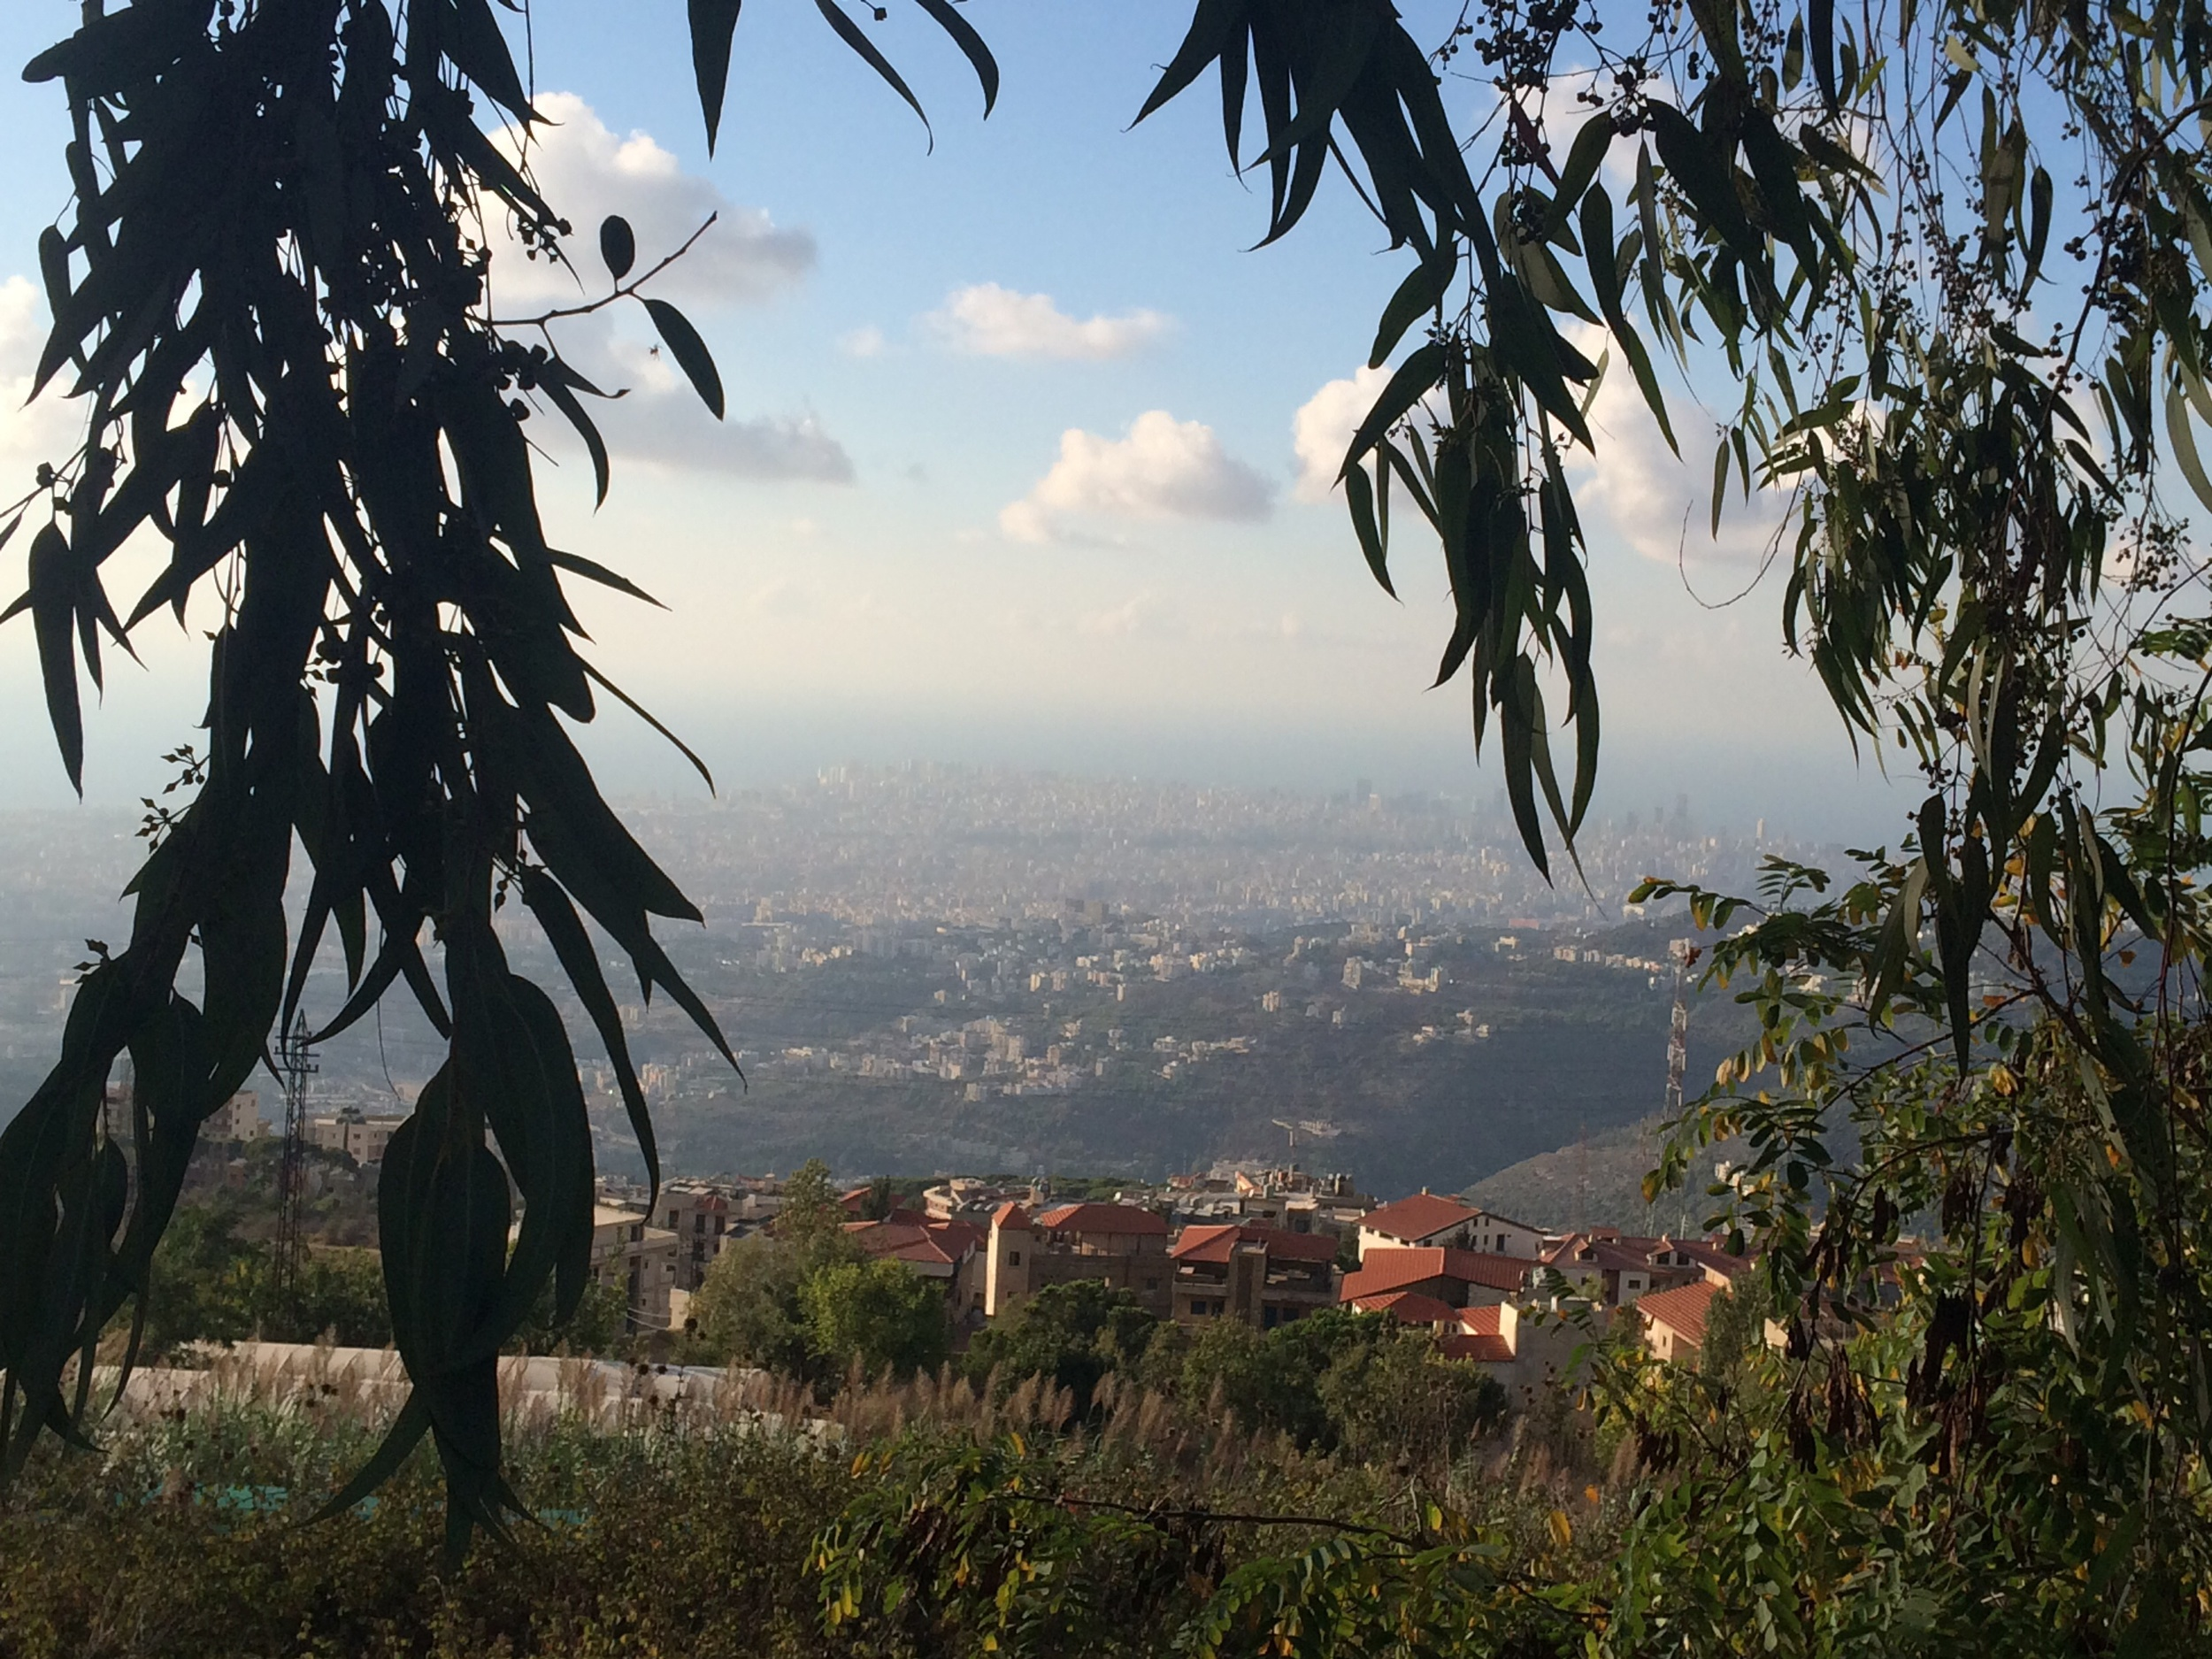 A view of Beirut from the mountains.